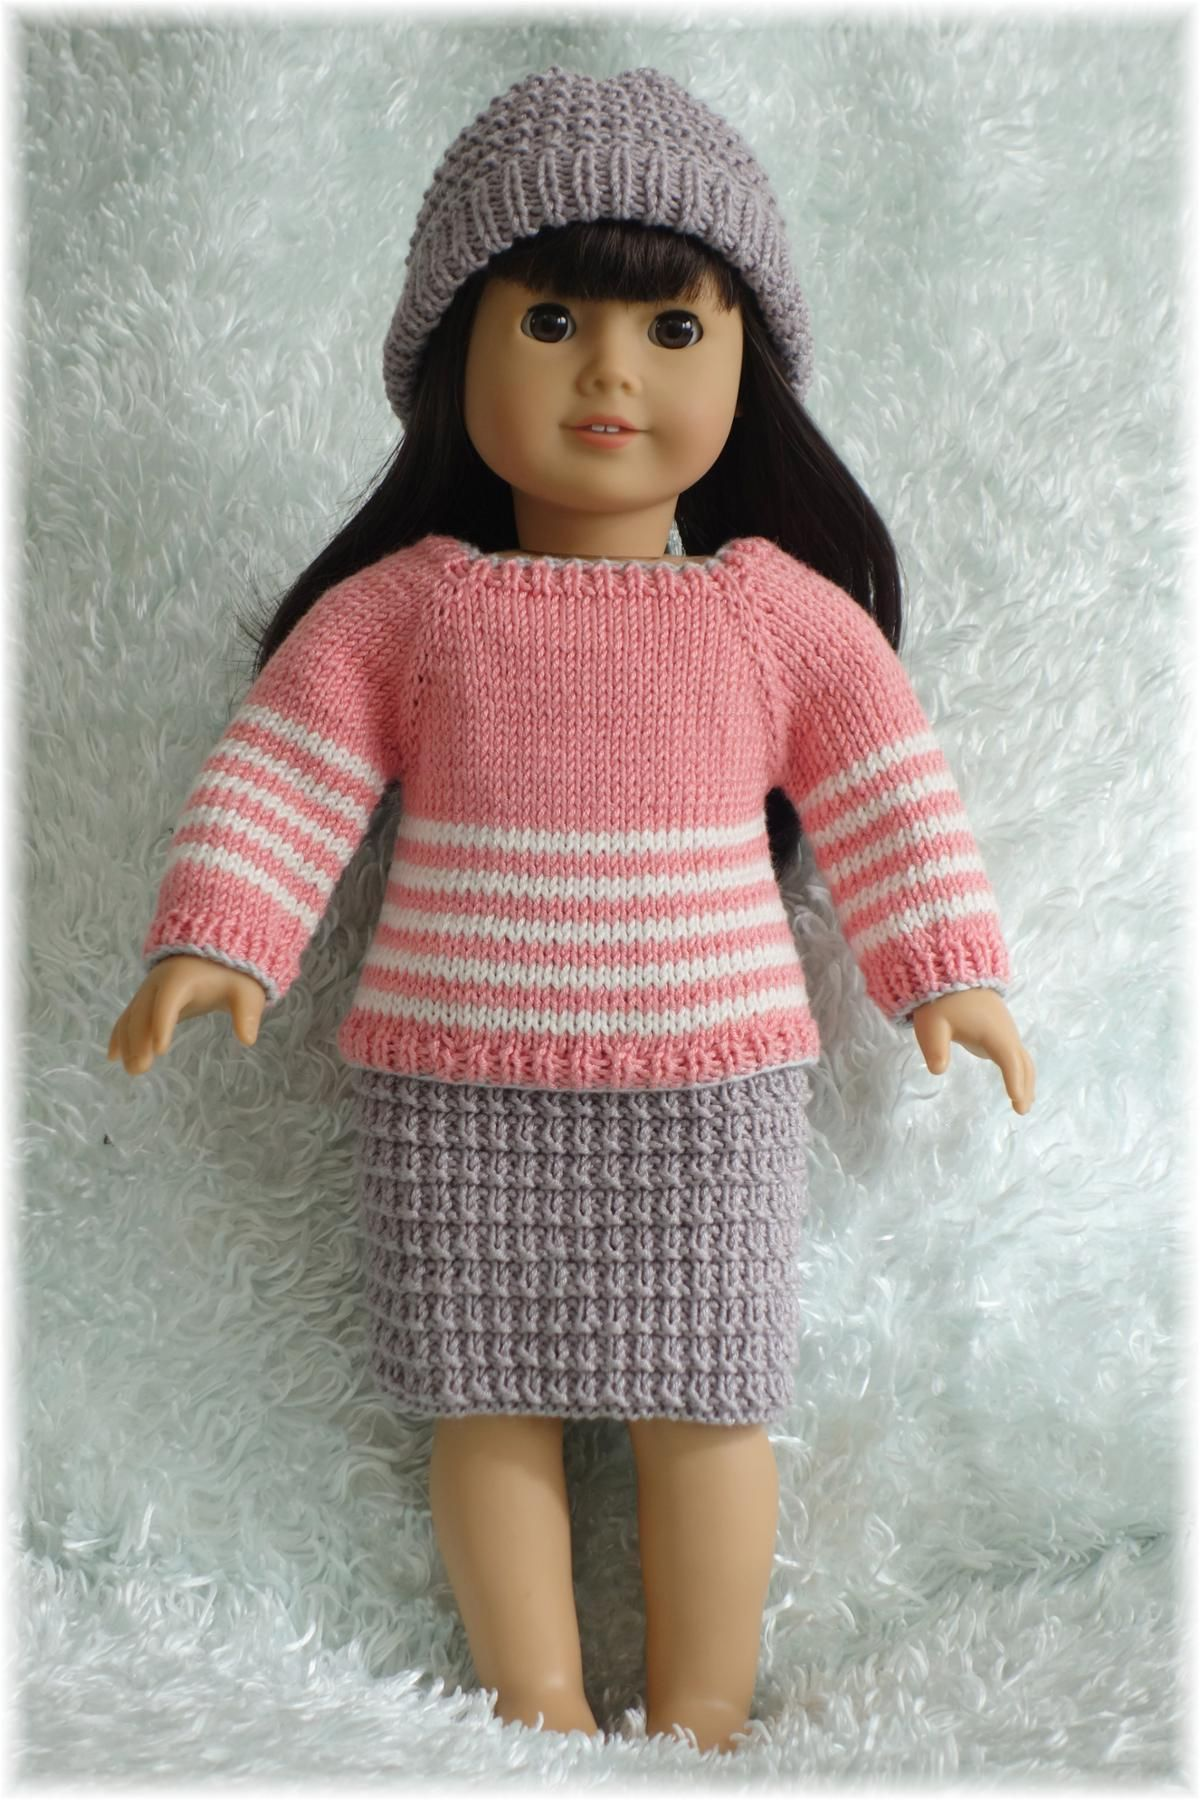 American Girl - Winter Sweater, Skirt and Hat by designer Purl Knit Designs